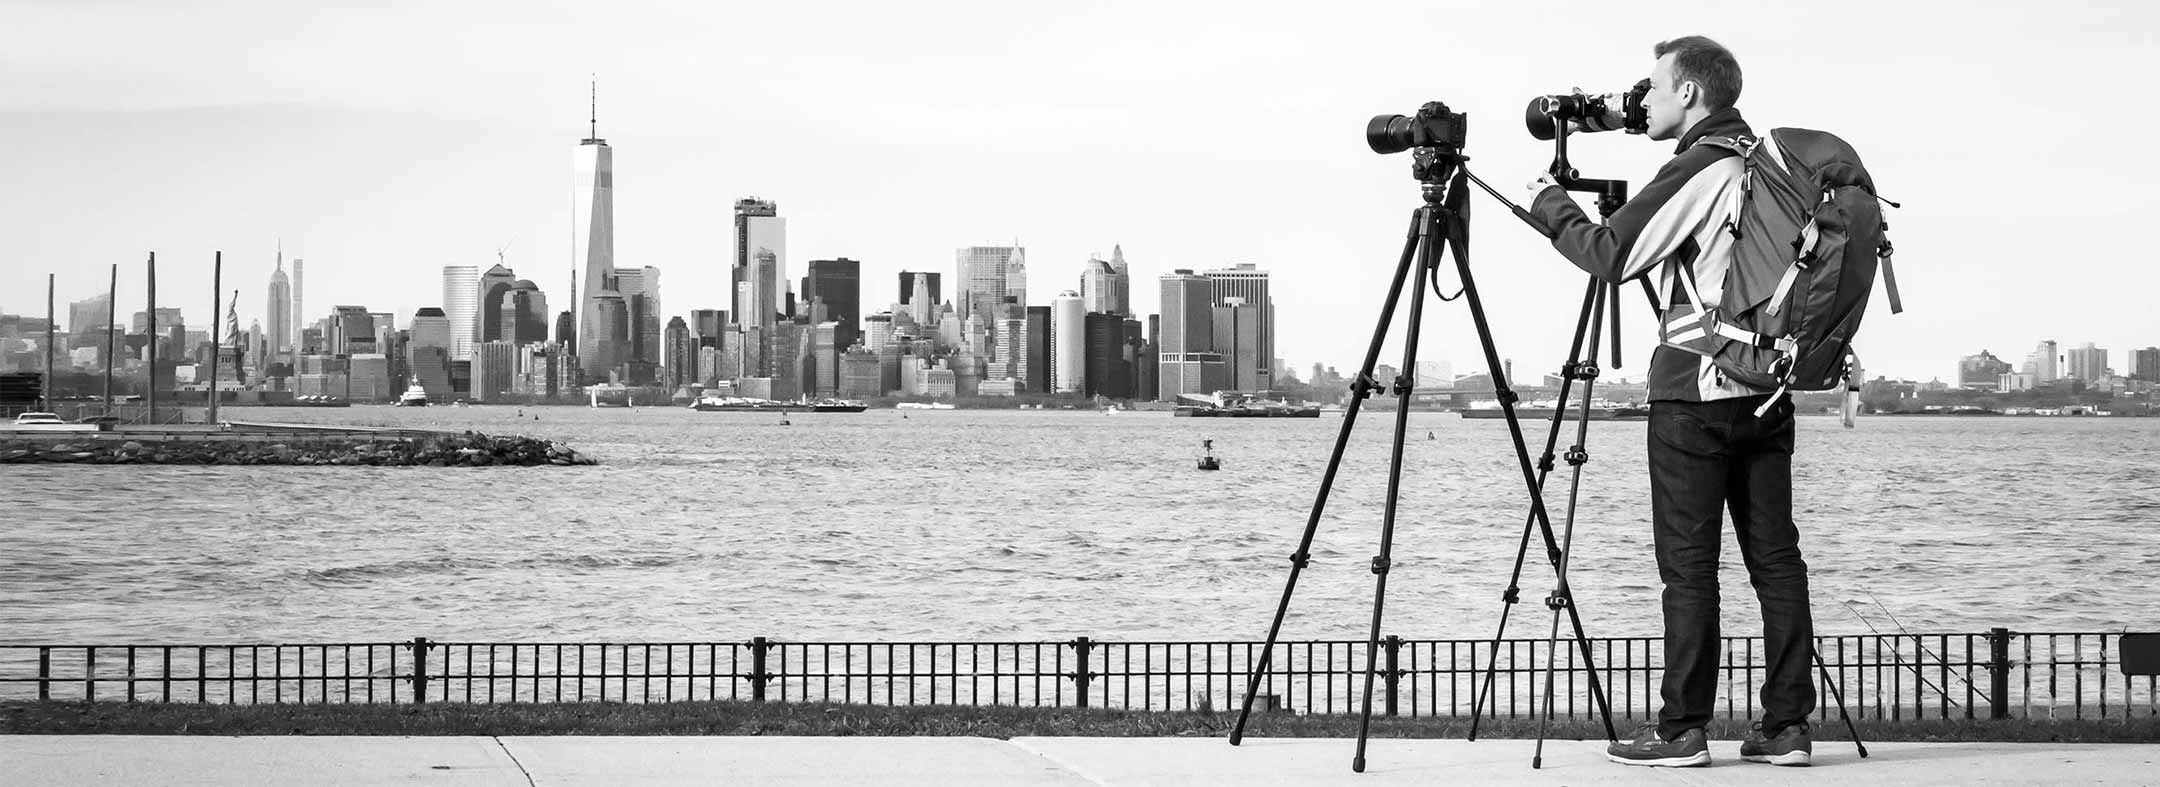 Portrait photo of Dan Piech, a VAST photographer artist creating very high resolution fine art photos of cityscapes and landscapes in New York City